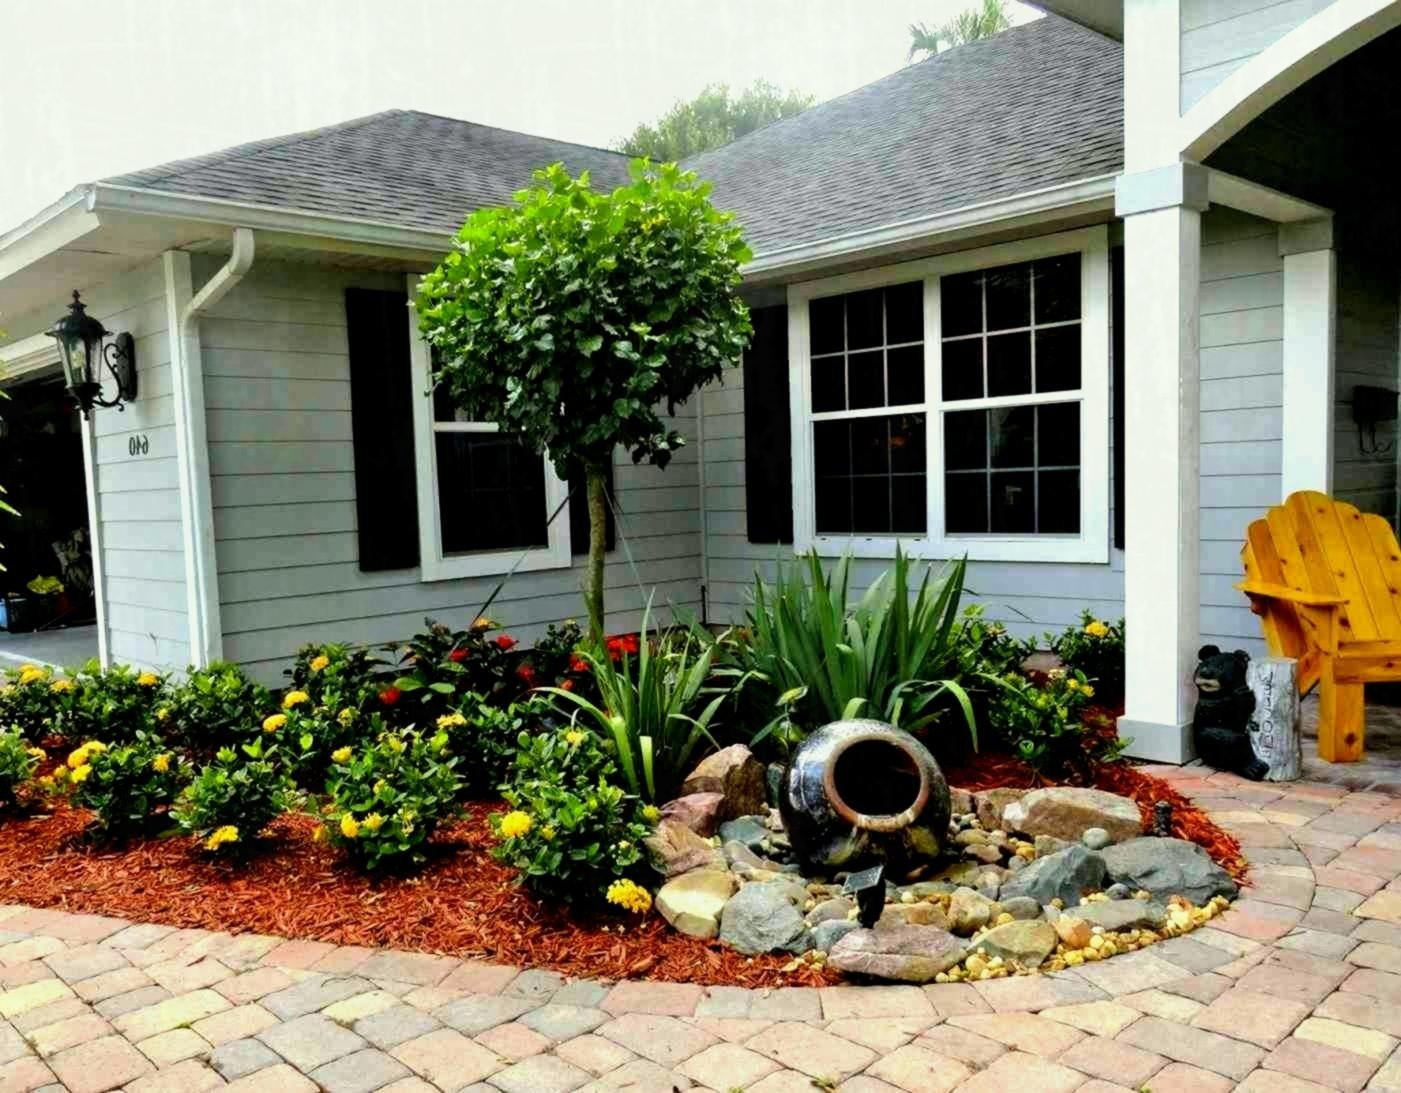 10 Elegant Simple Landscaping Ideas For Front Yards landscape design simple landscaping ideas with trees on a budget 2020